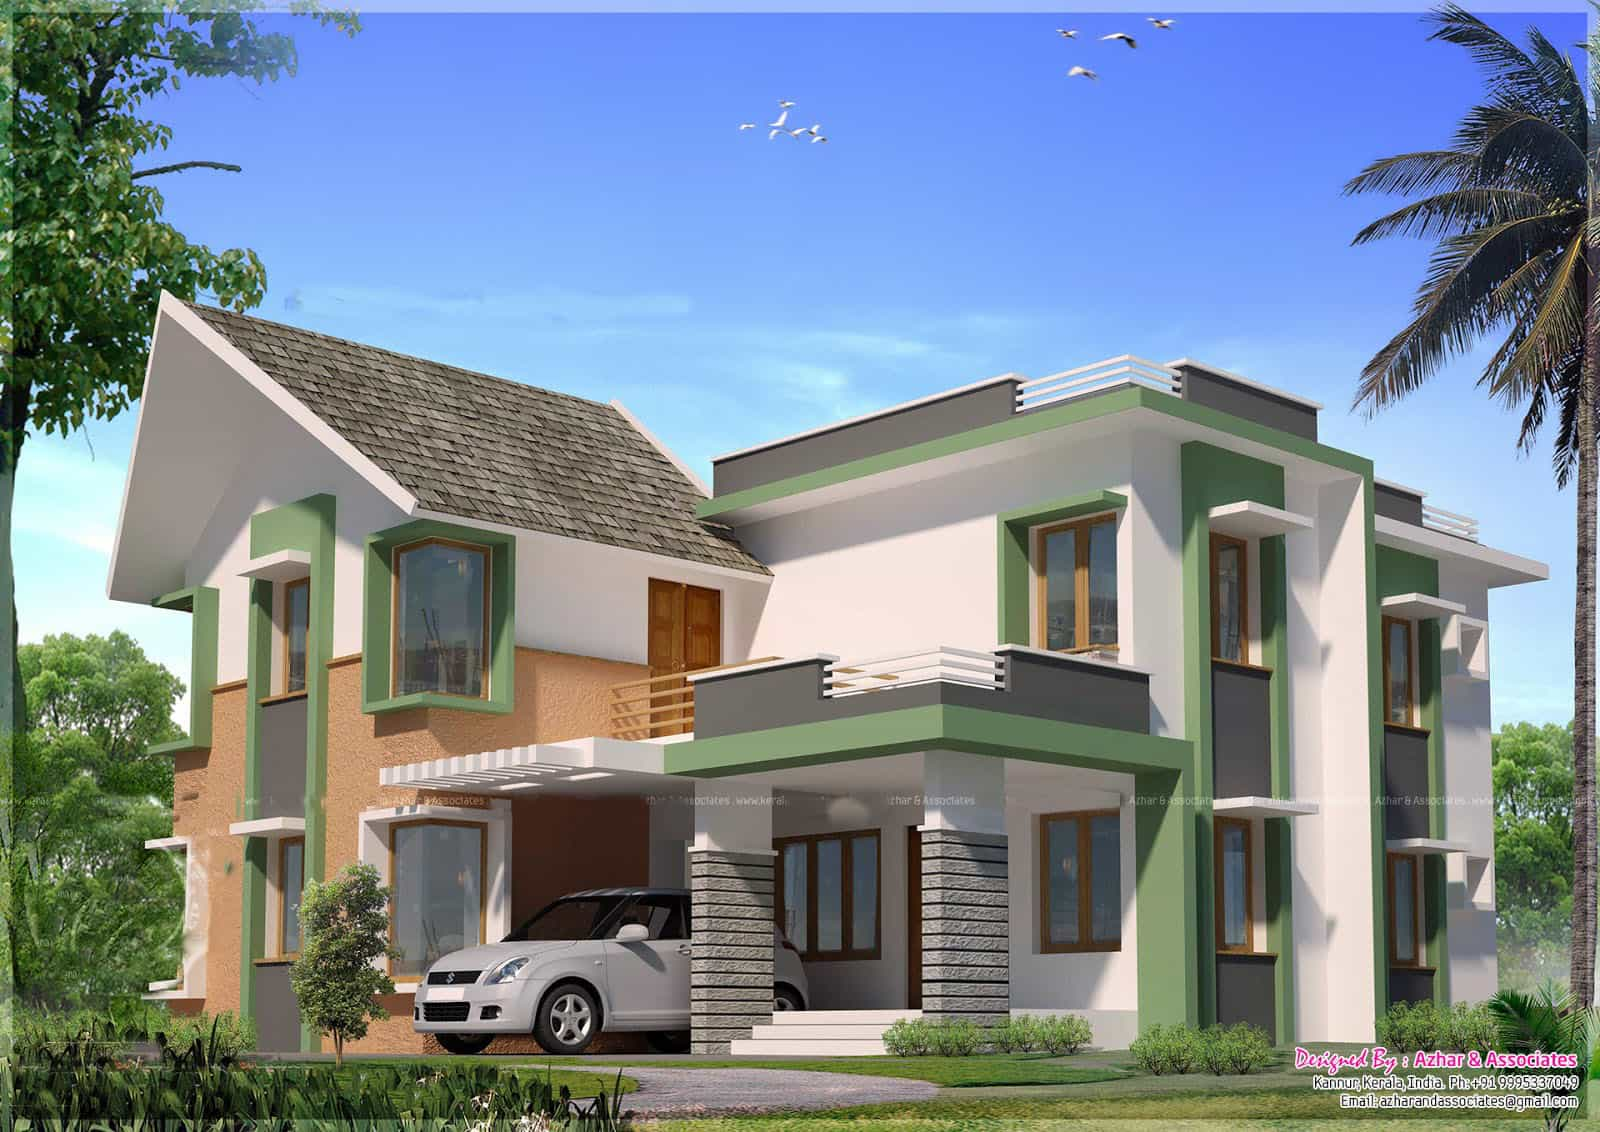 Kerala house plans with estimate for a 2900 home design for Contemporary model house